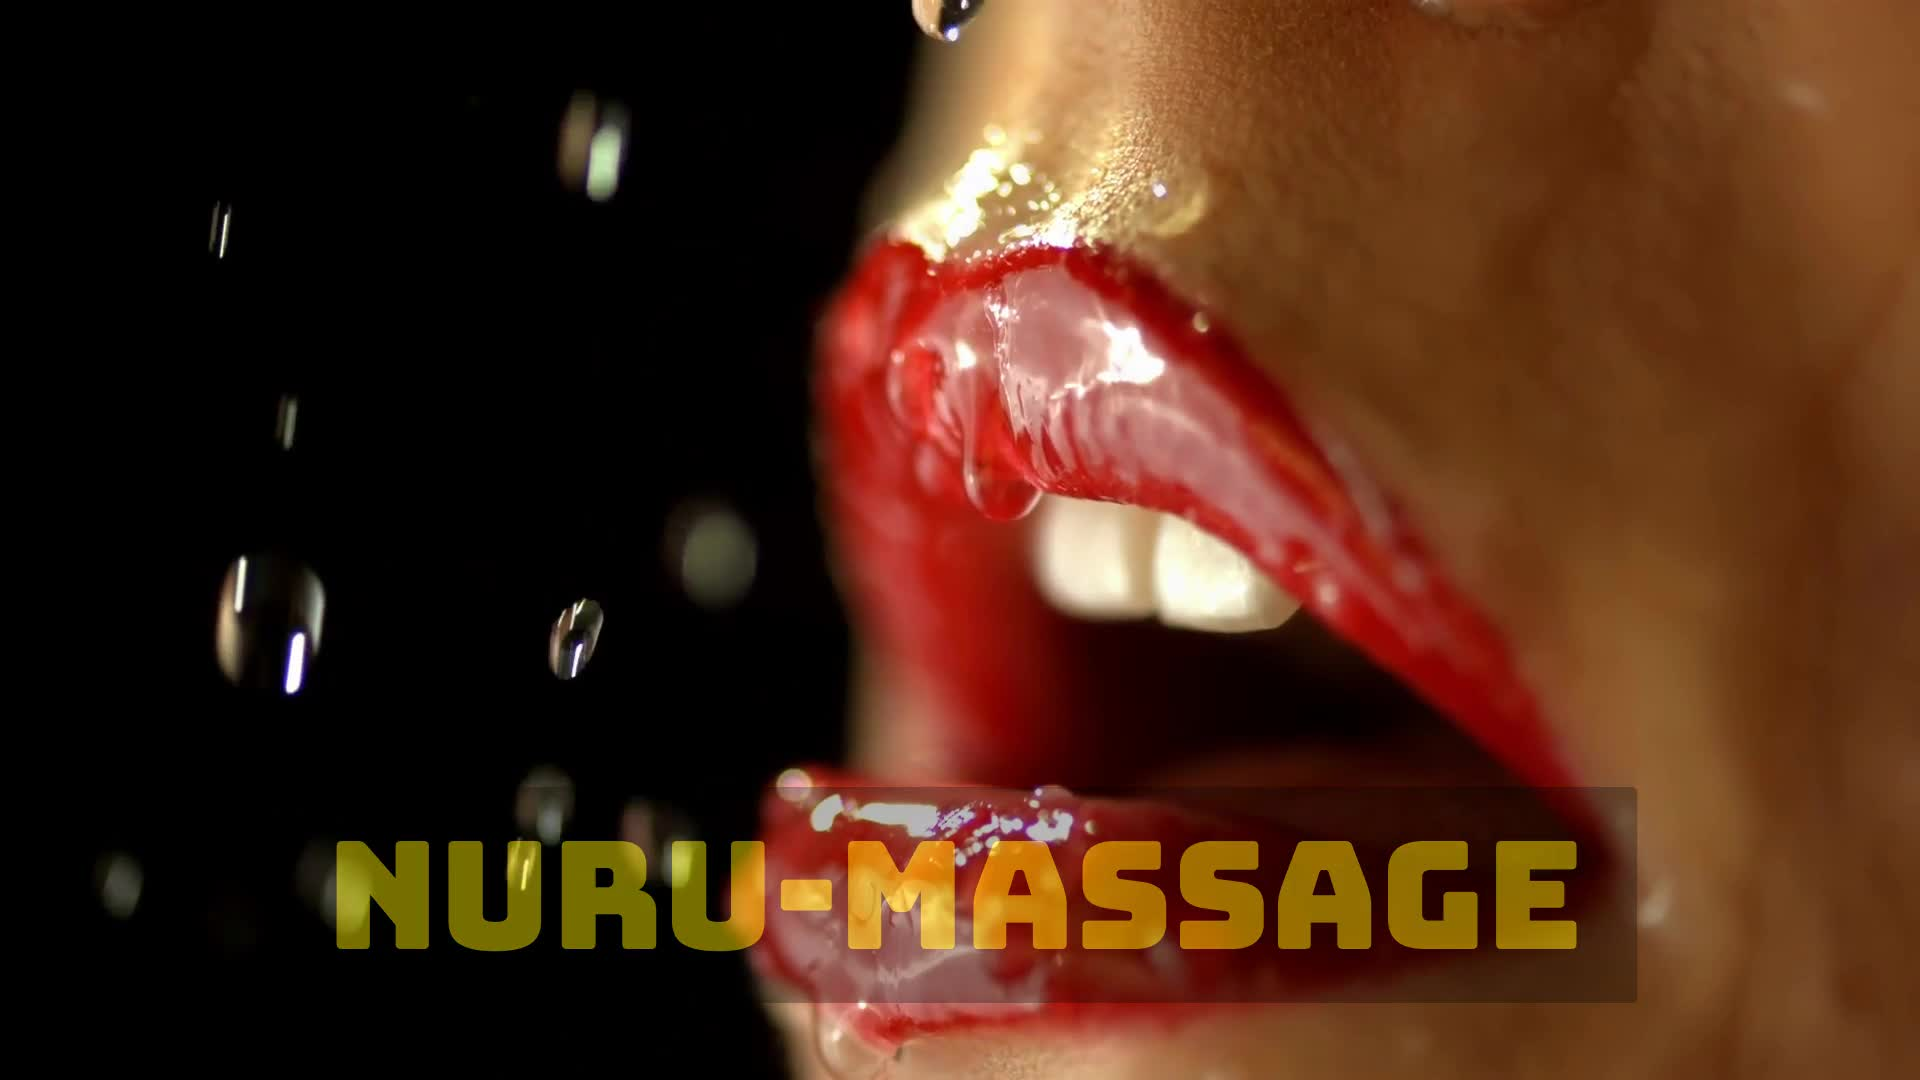 Jia Jia 💦ASIA MASSAGE 💦 Chinesische Massage Zurich Area, Swiss German Area, Schwyz